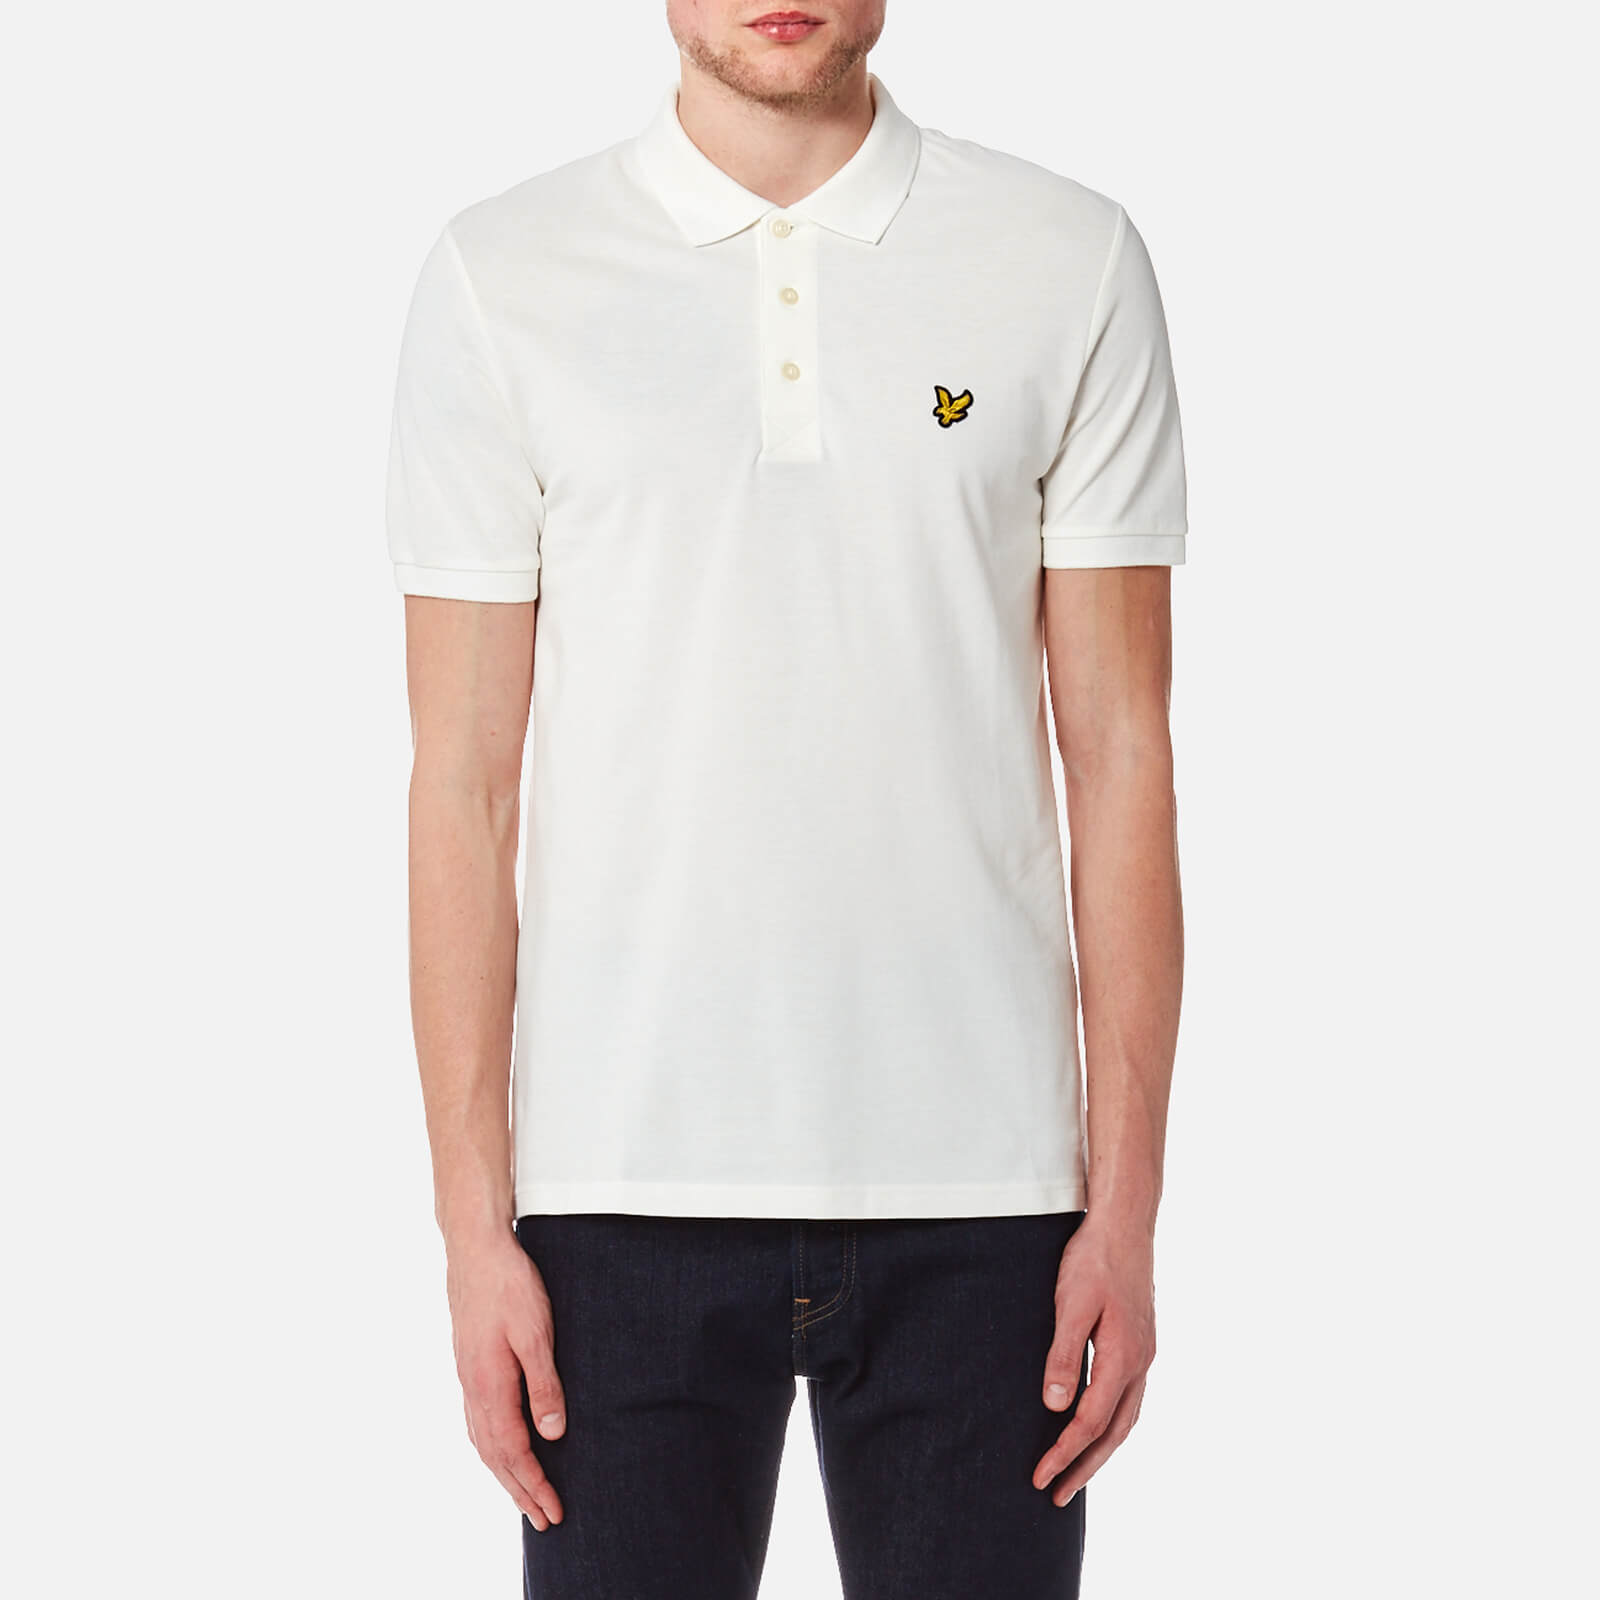 ef9eddcc Lyle & Scott Men's Polo Shirt - Off White Clothing | TheHut.com